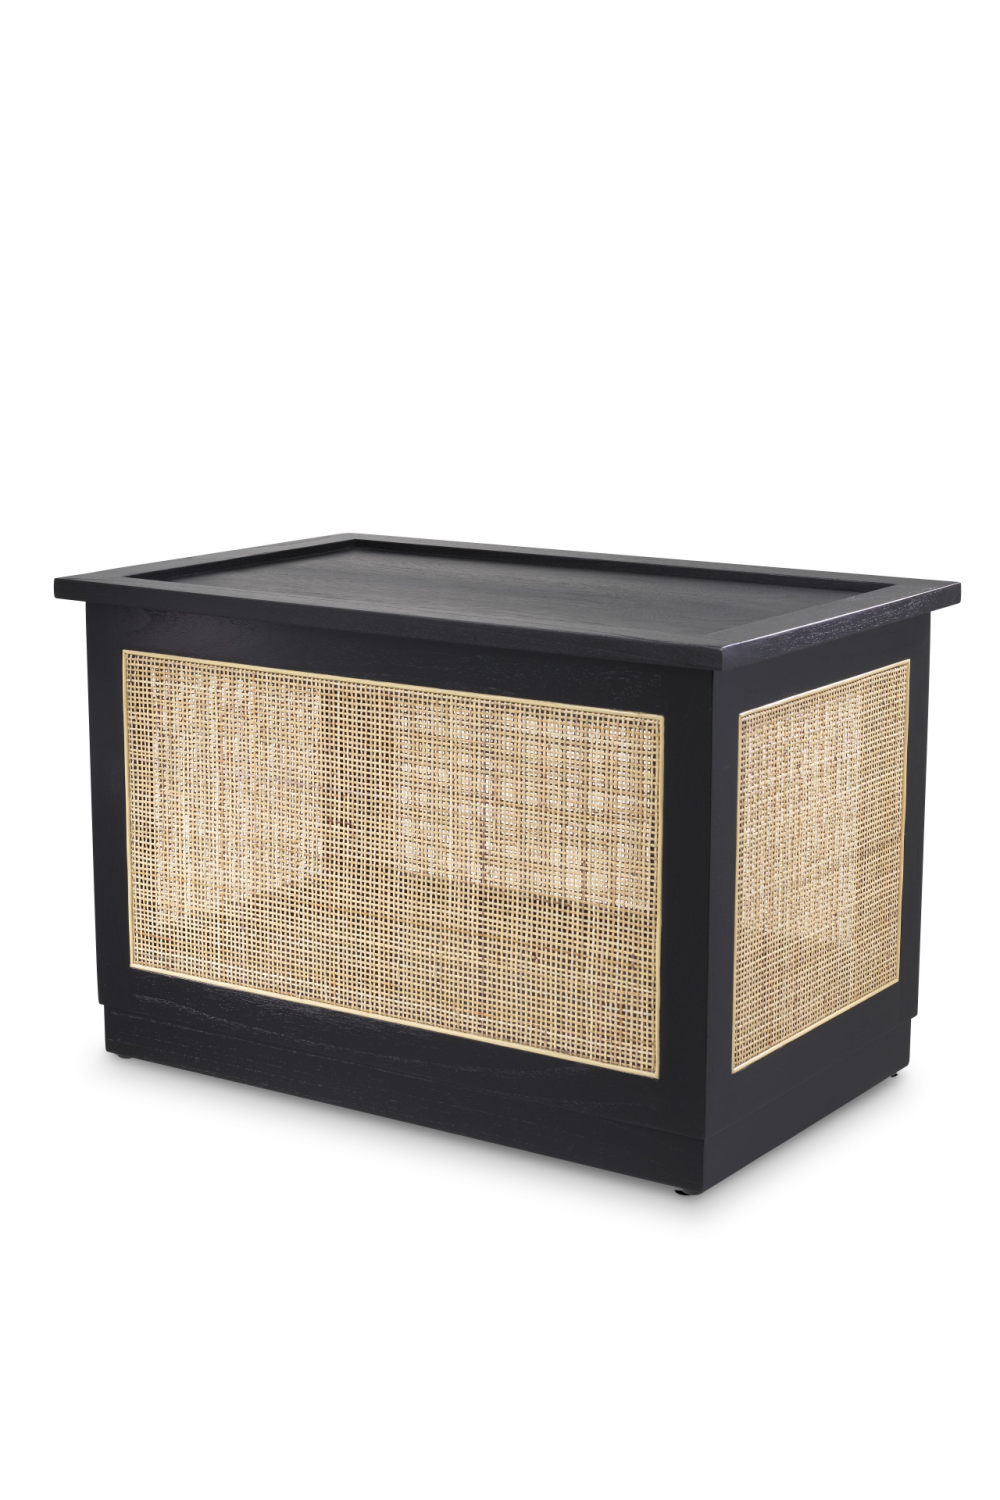 Black Rattan Cane Trunk | Eichholtz Philbert | Woodfurniture.com